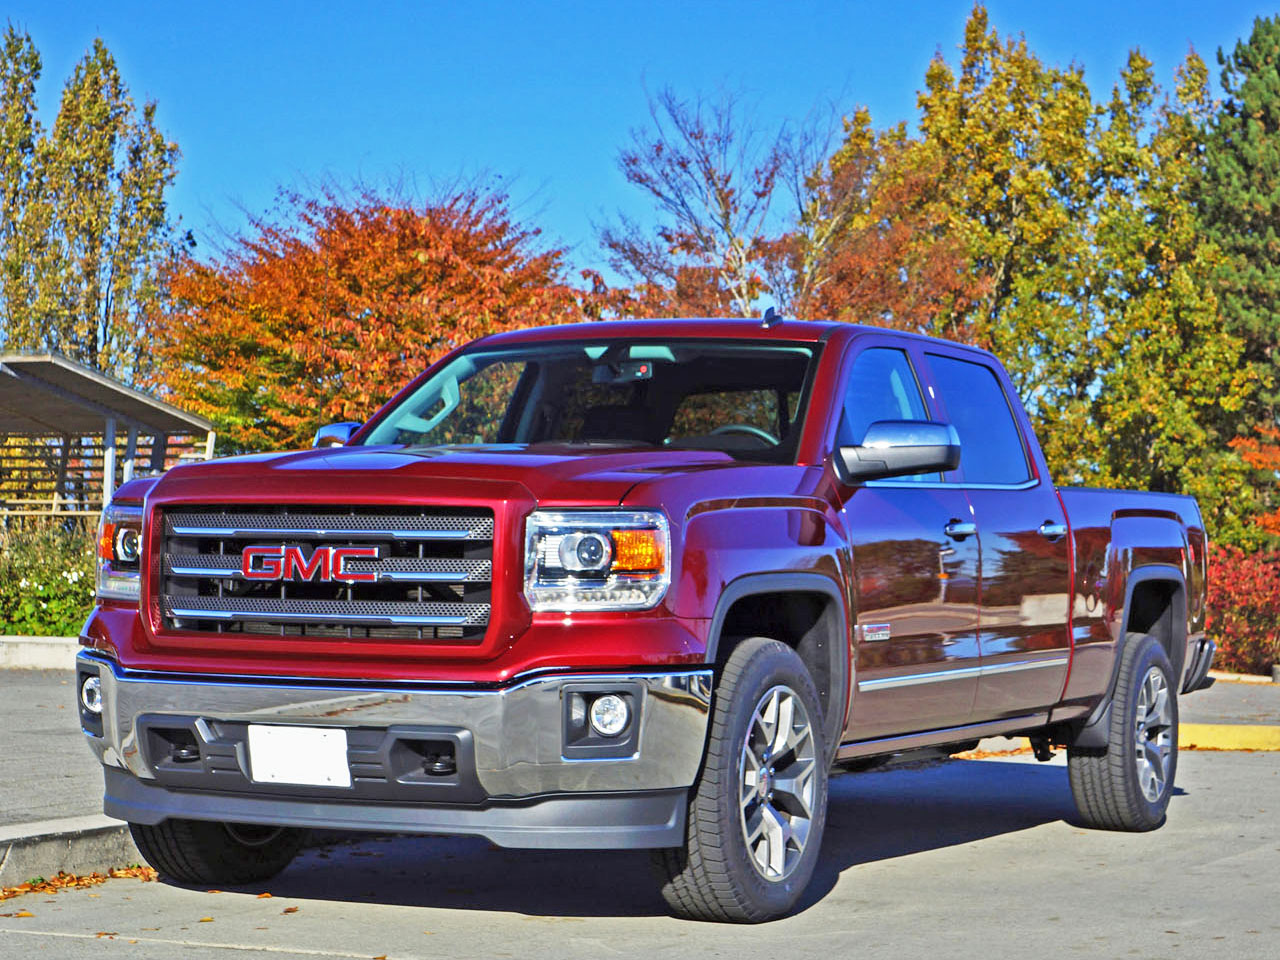 2015 gmc sierra 1500 sle crew cab 4x4 road test review carcostcanada. Black Bedroom Furniture Sets. Home Design Ideas